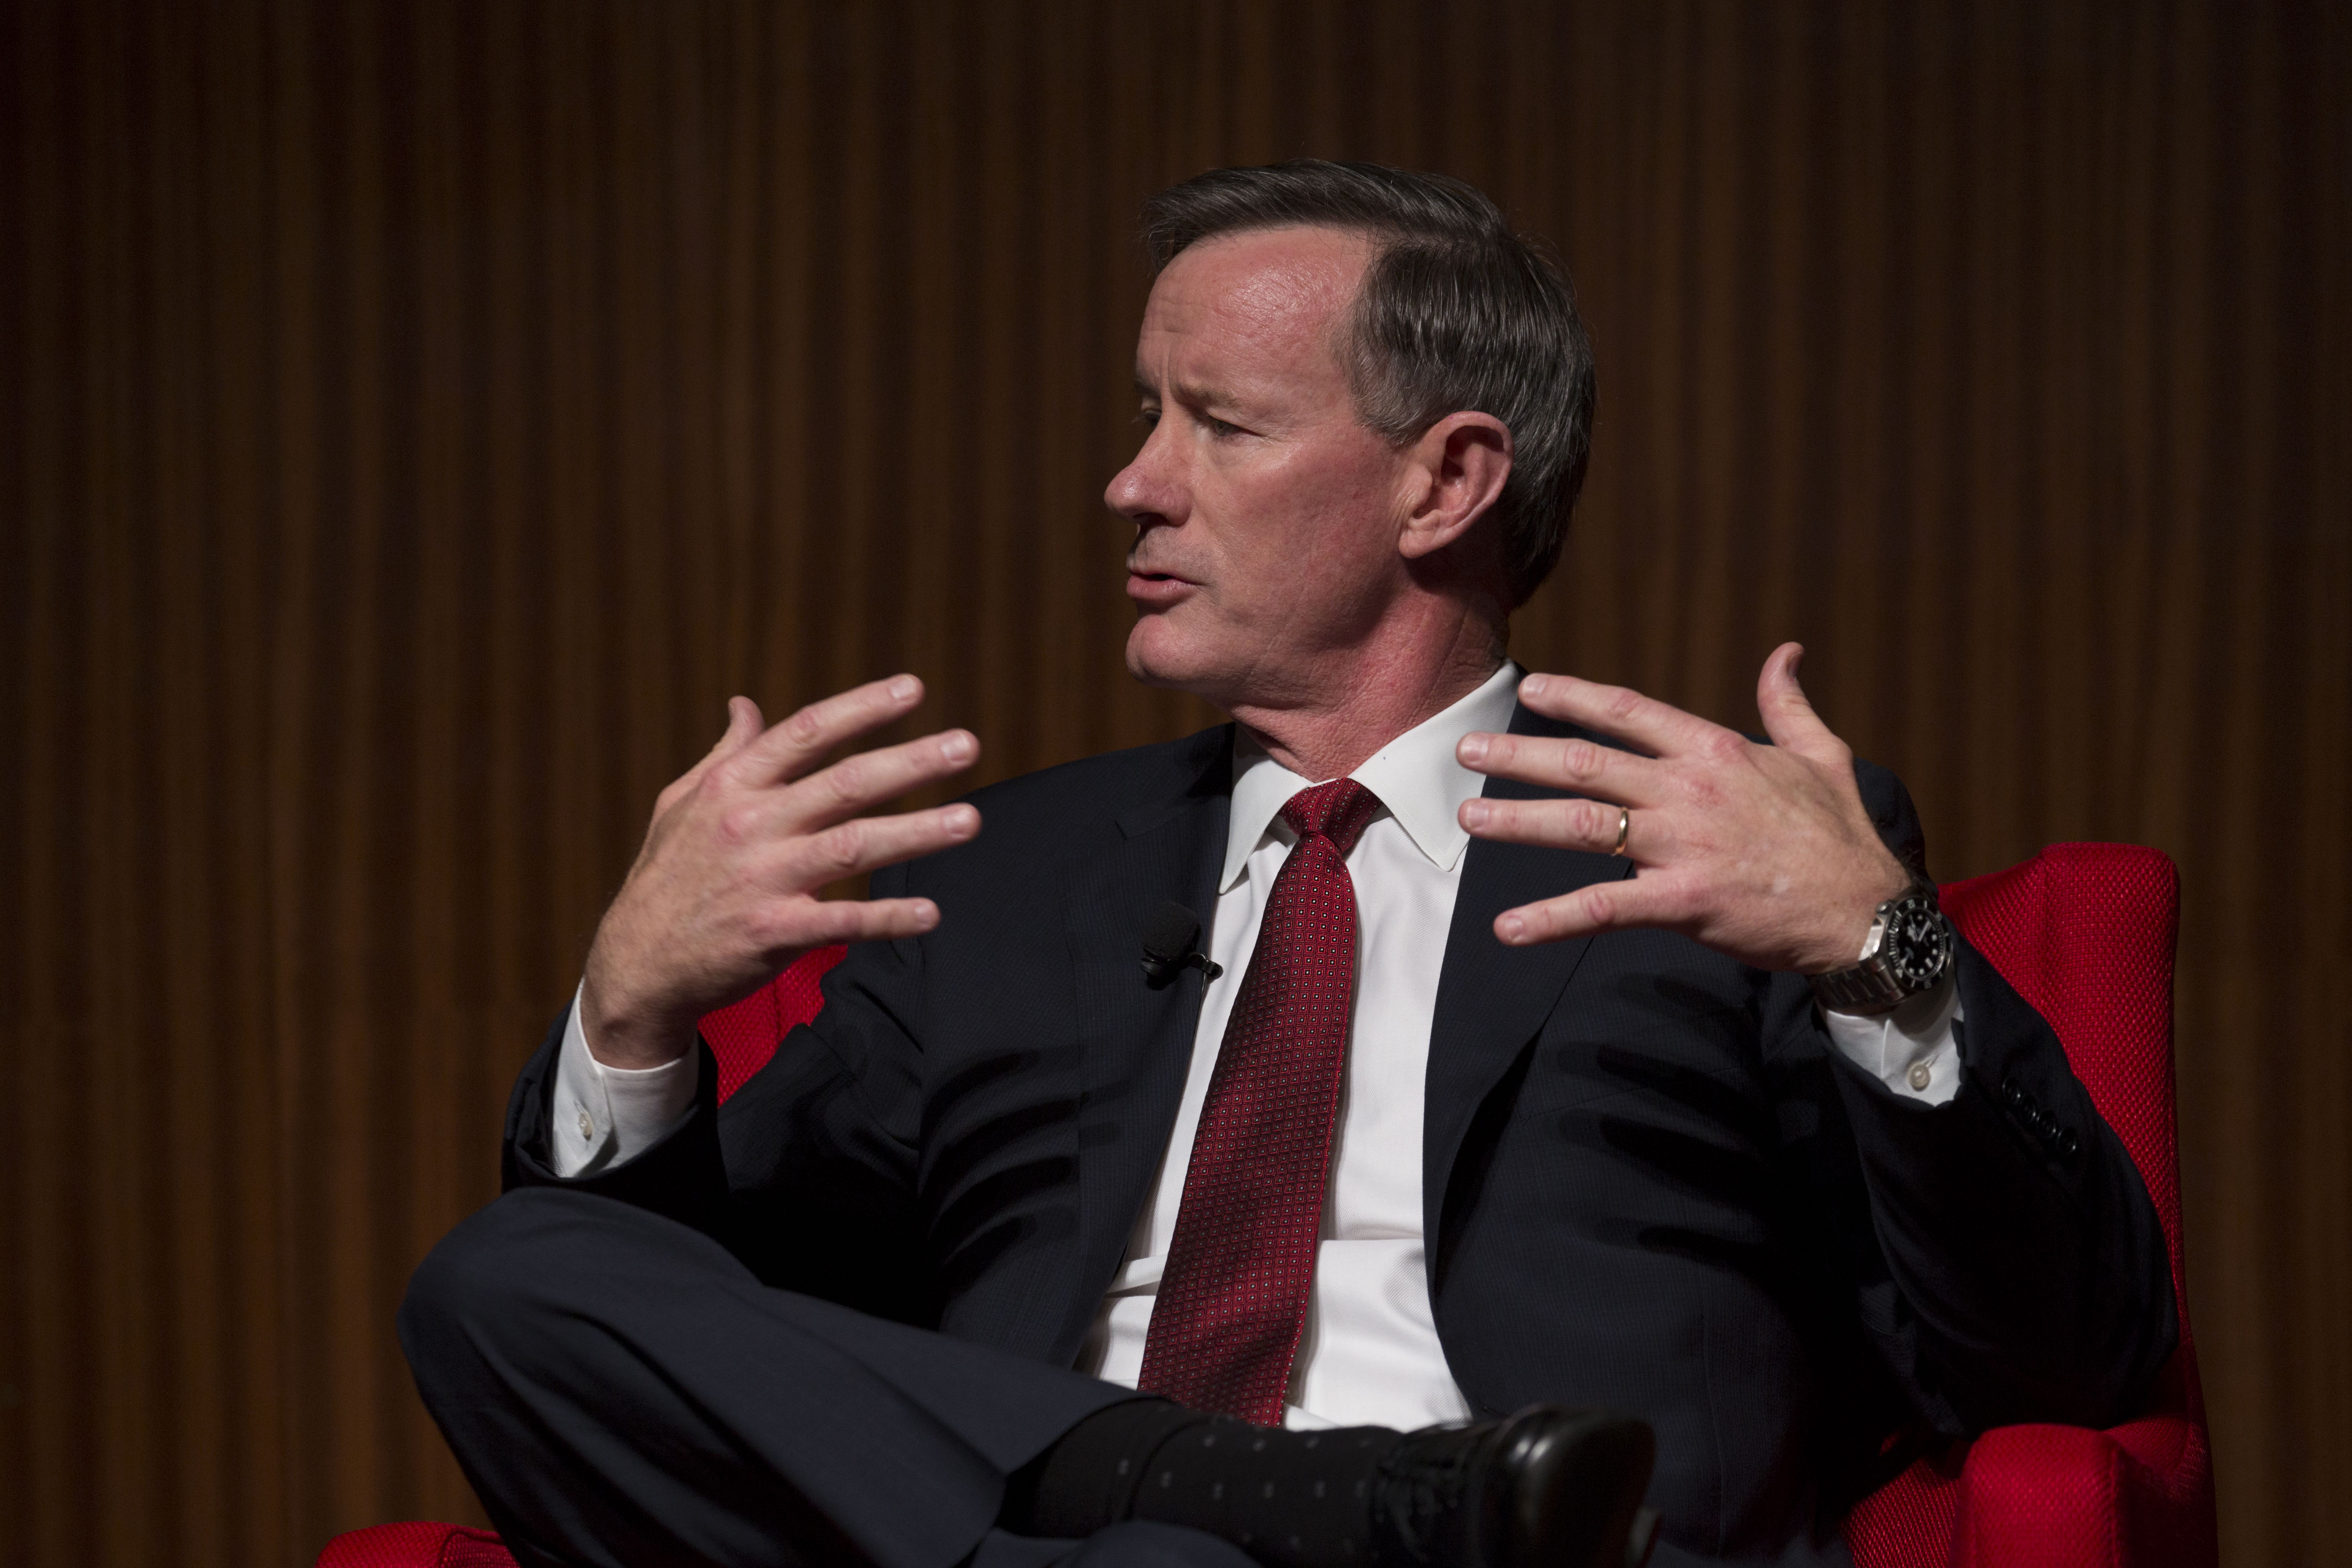 Picture of McRaven speaking at a past event.